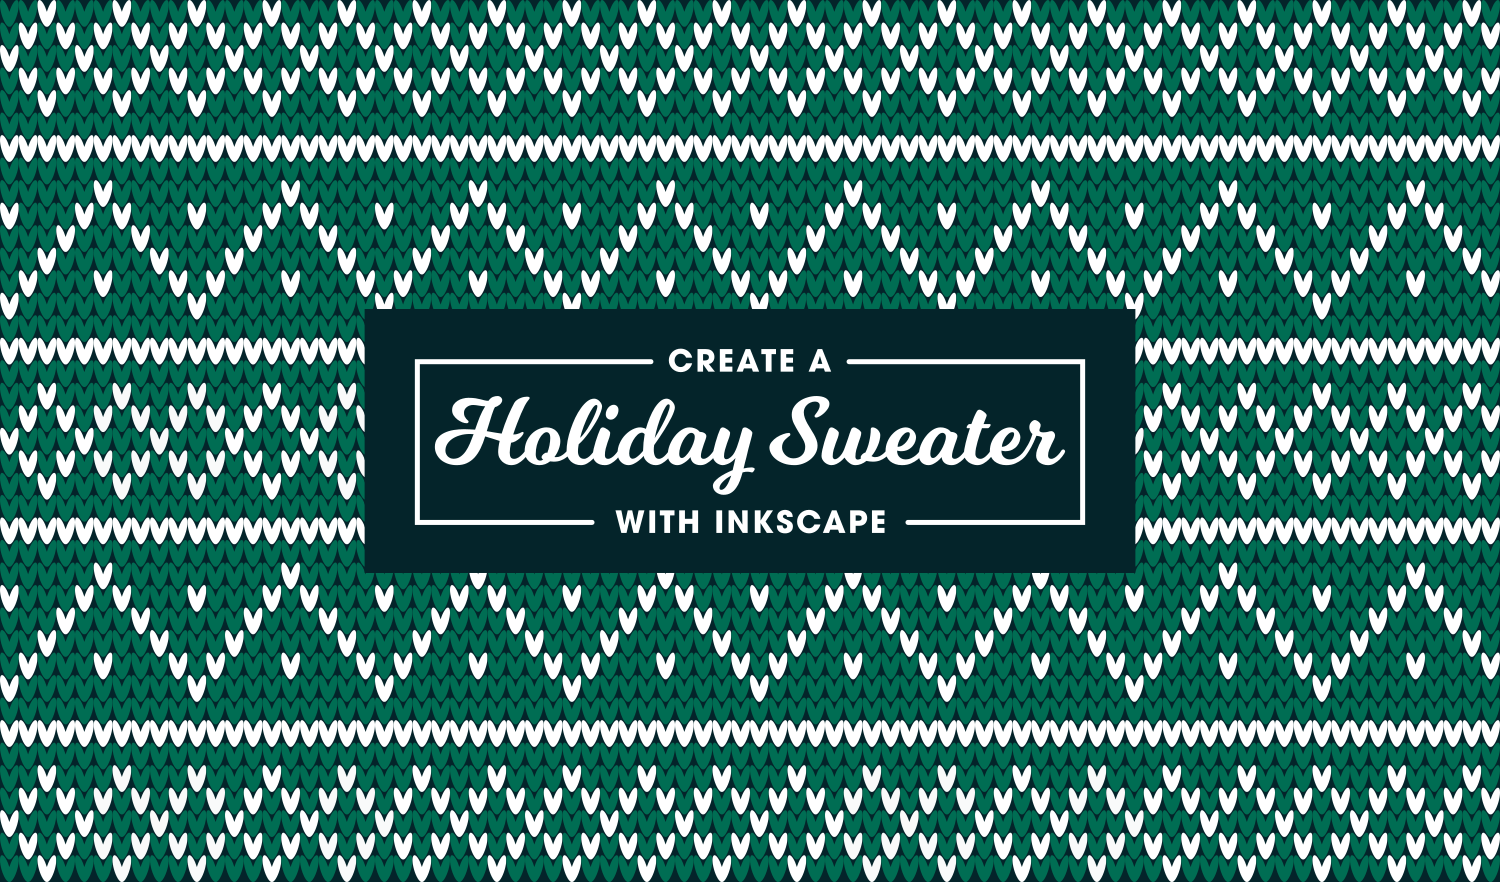 Christmas Sweater Pattern.Create A Vector Christmas Sweater Pattern With Inkscape